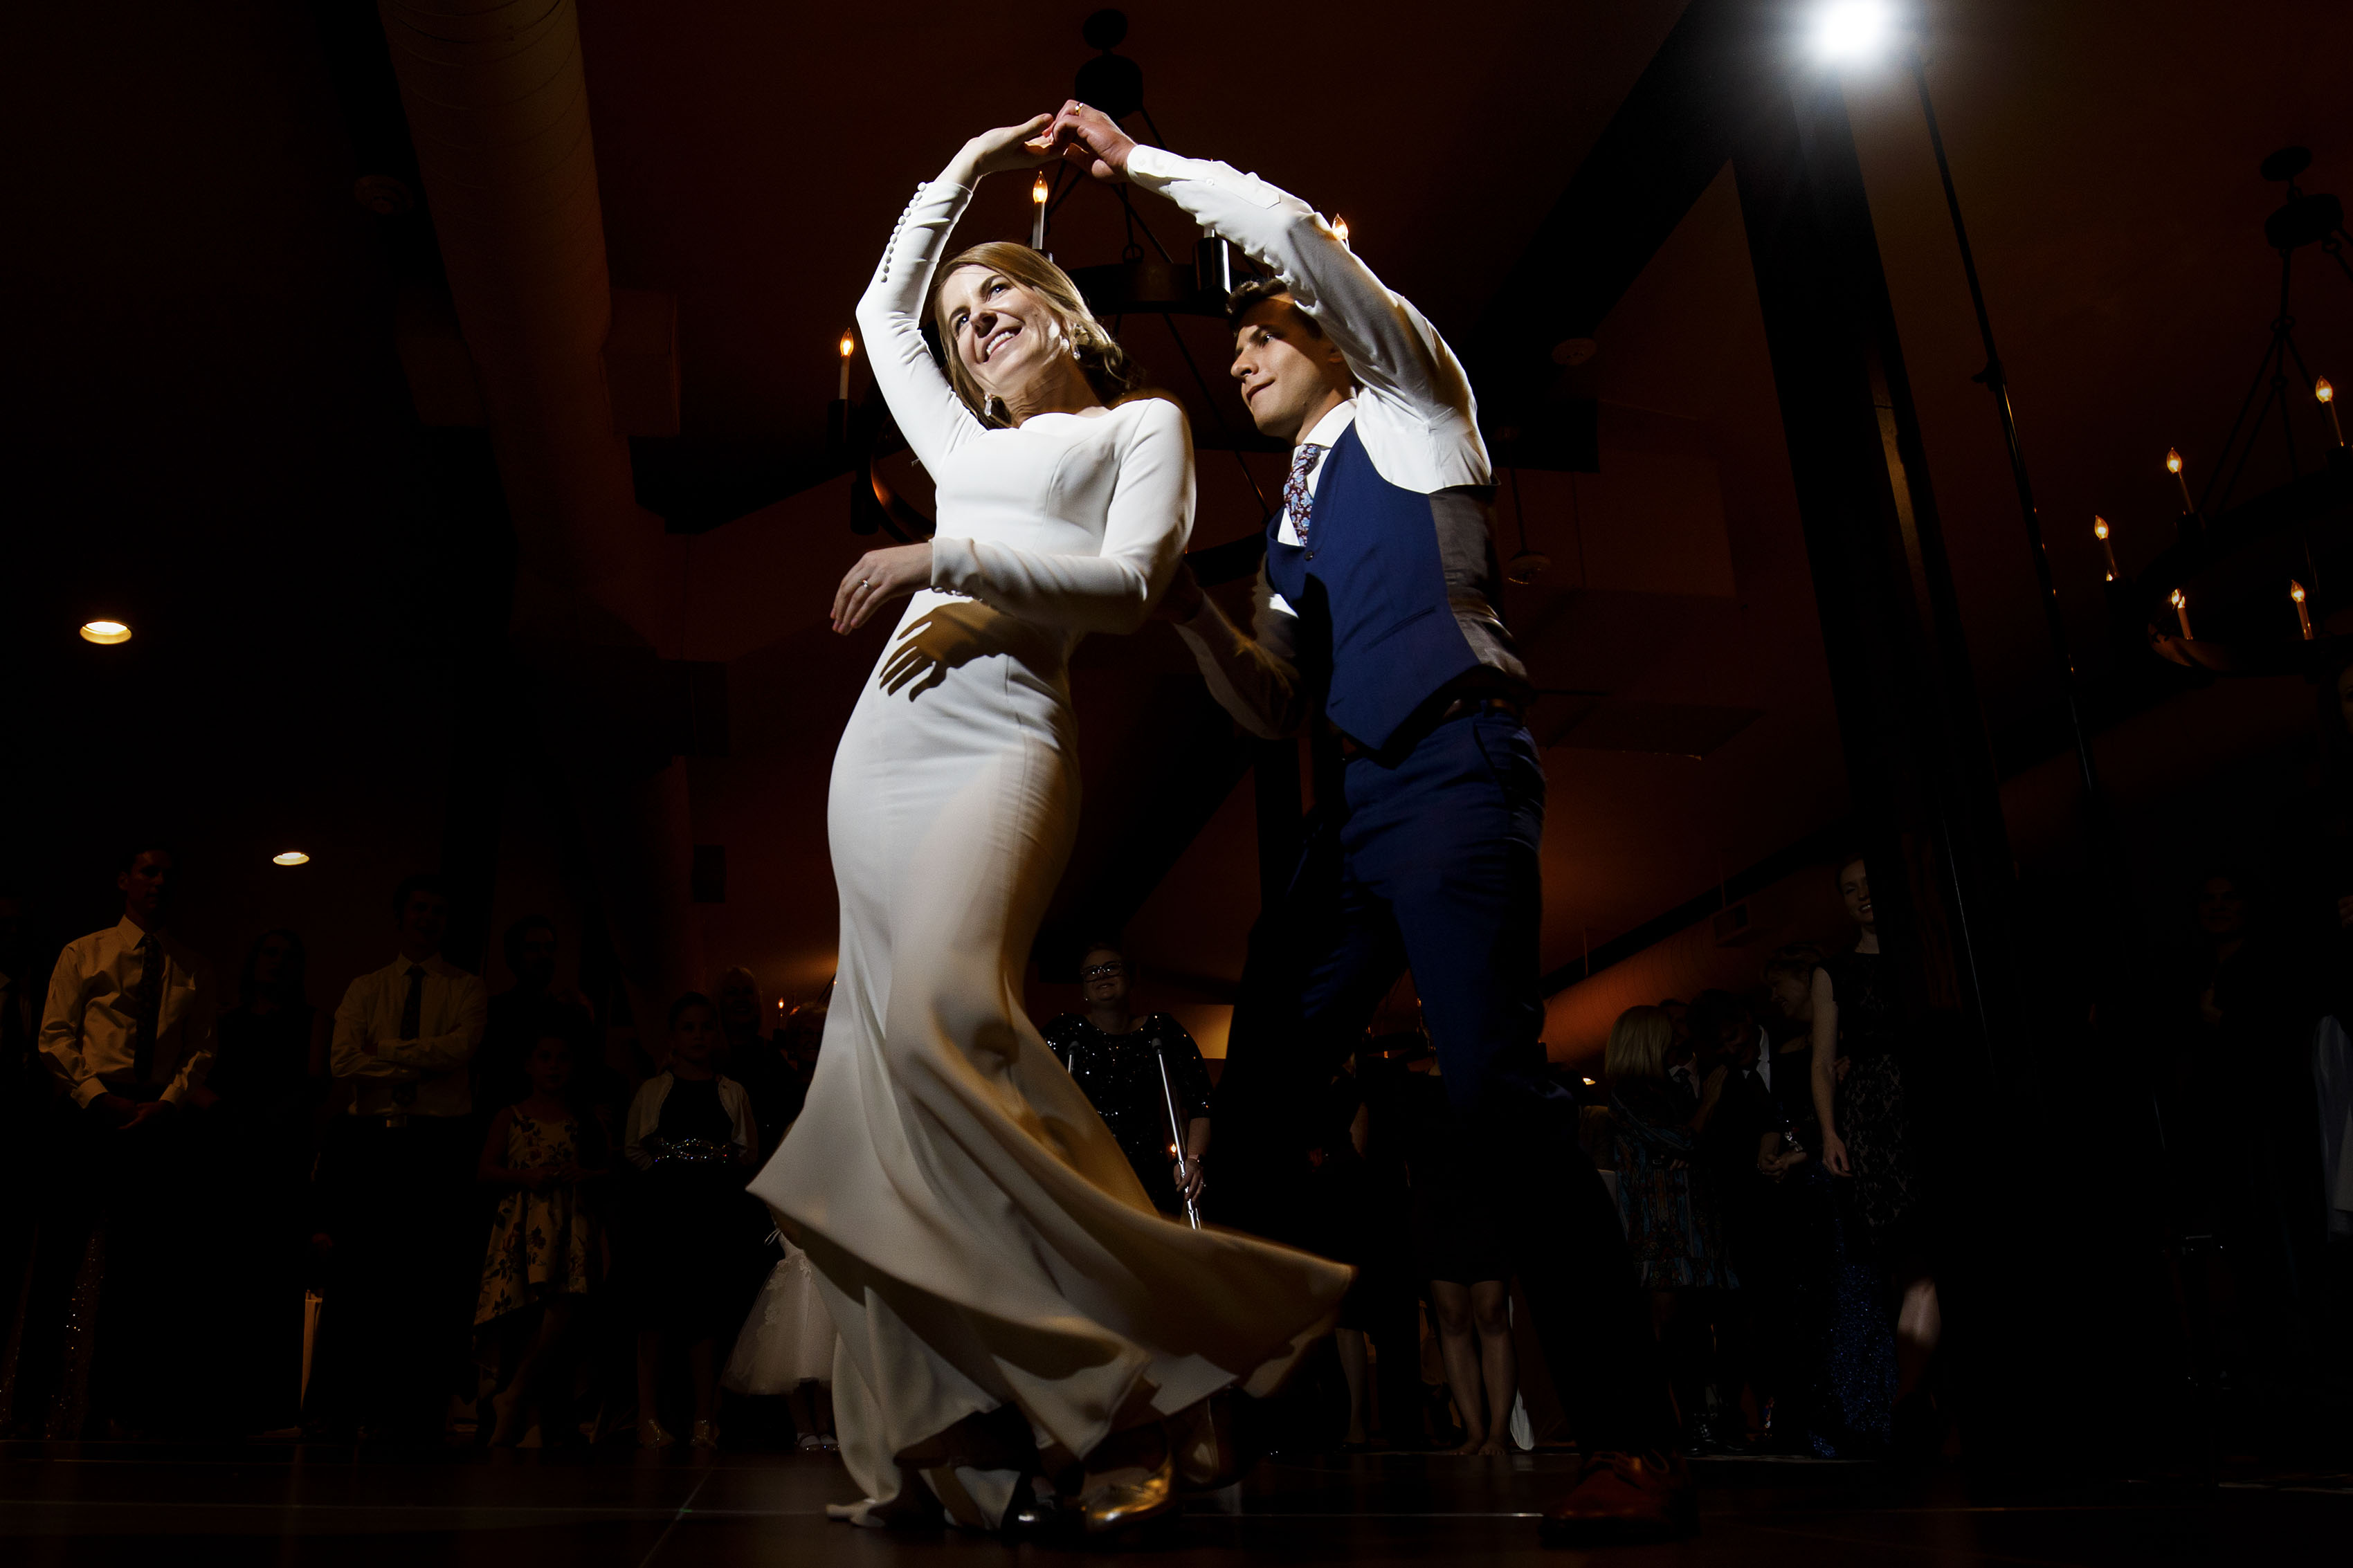 The couple share their first dance at The Vista at Applewood Golf Course